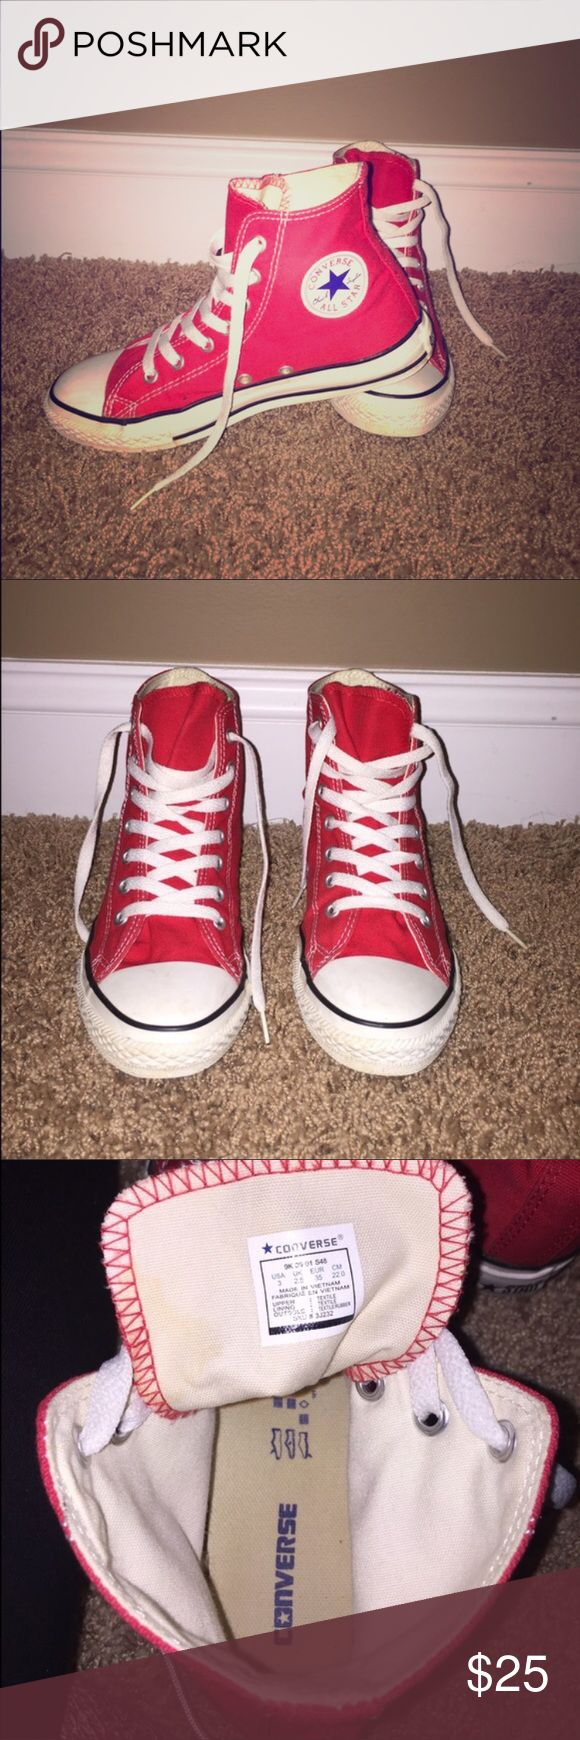 converse 6 5 womens. red high top converse 6 5 womens